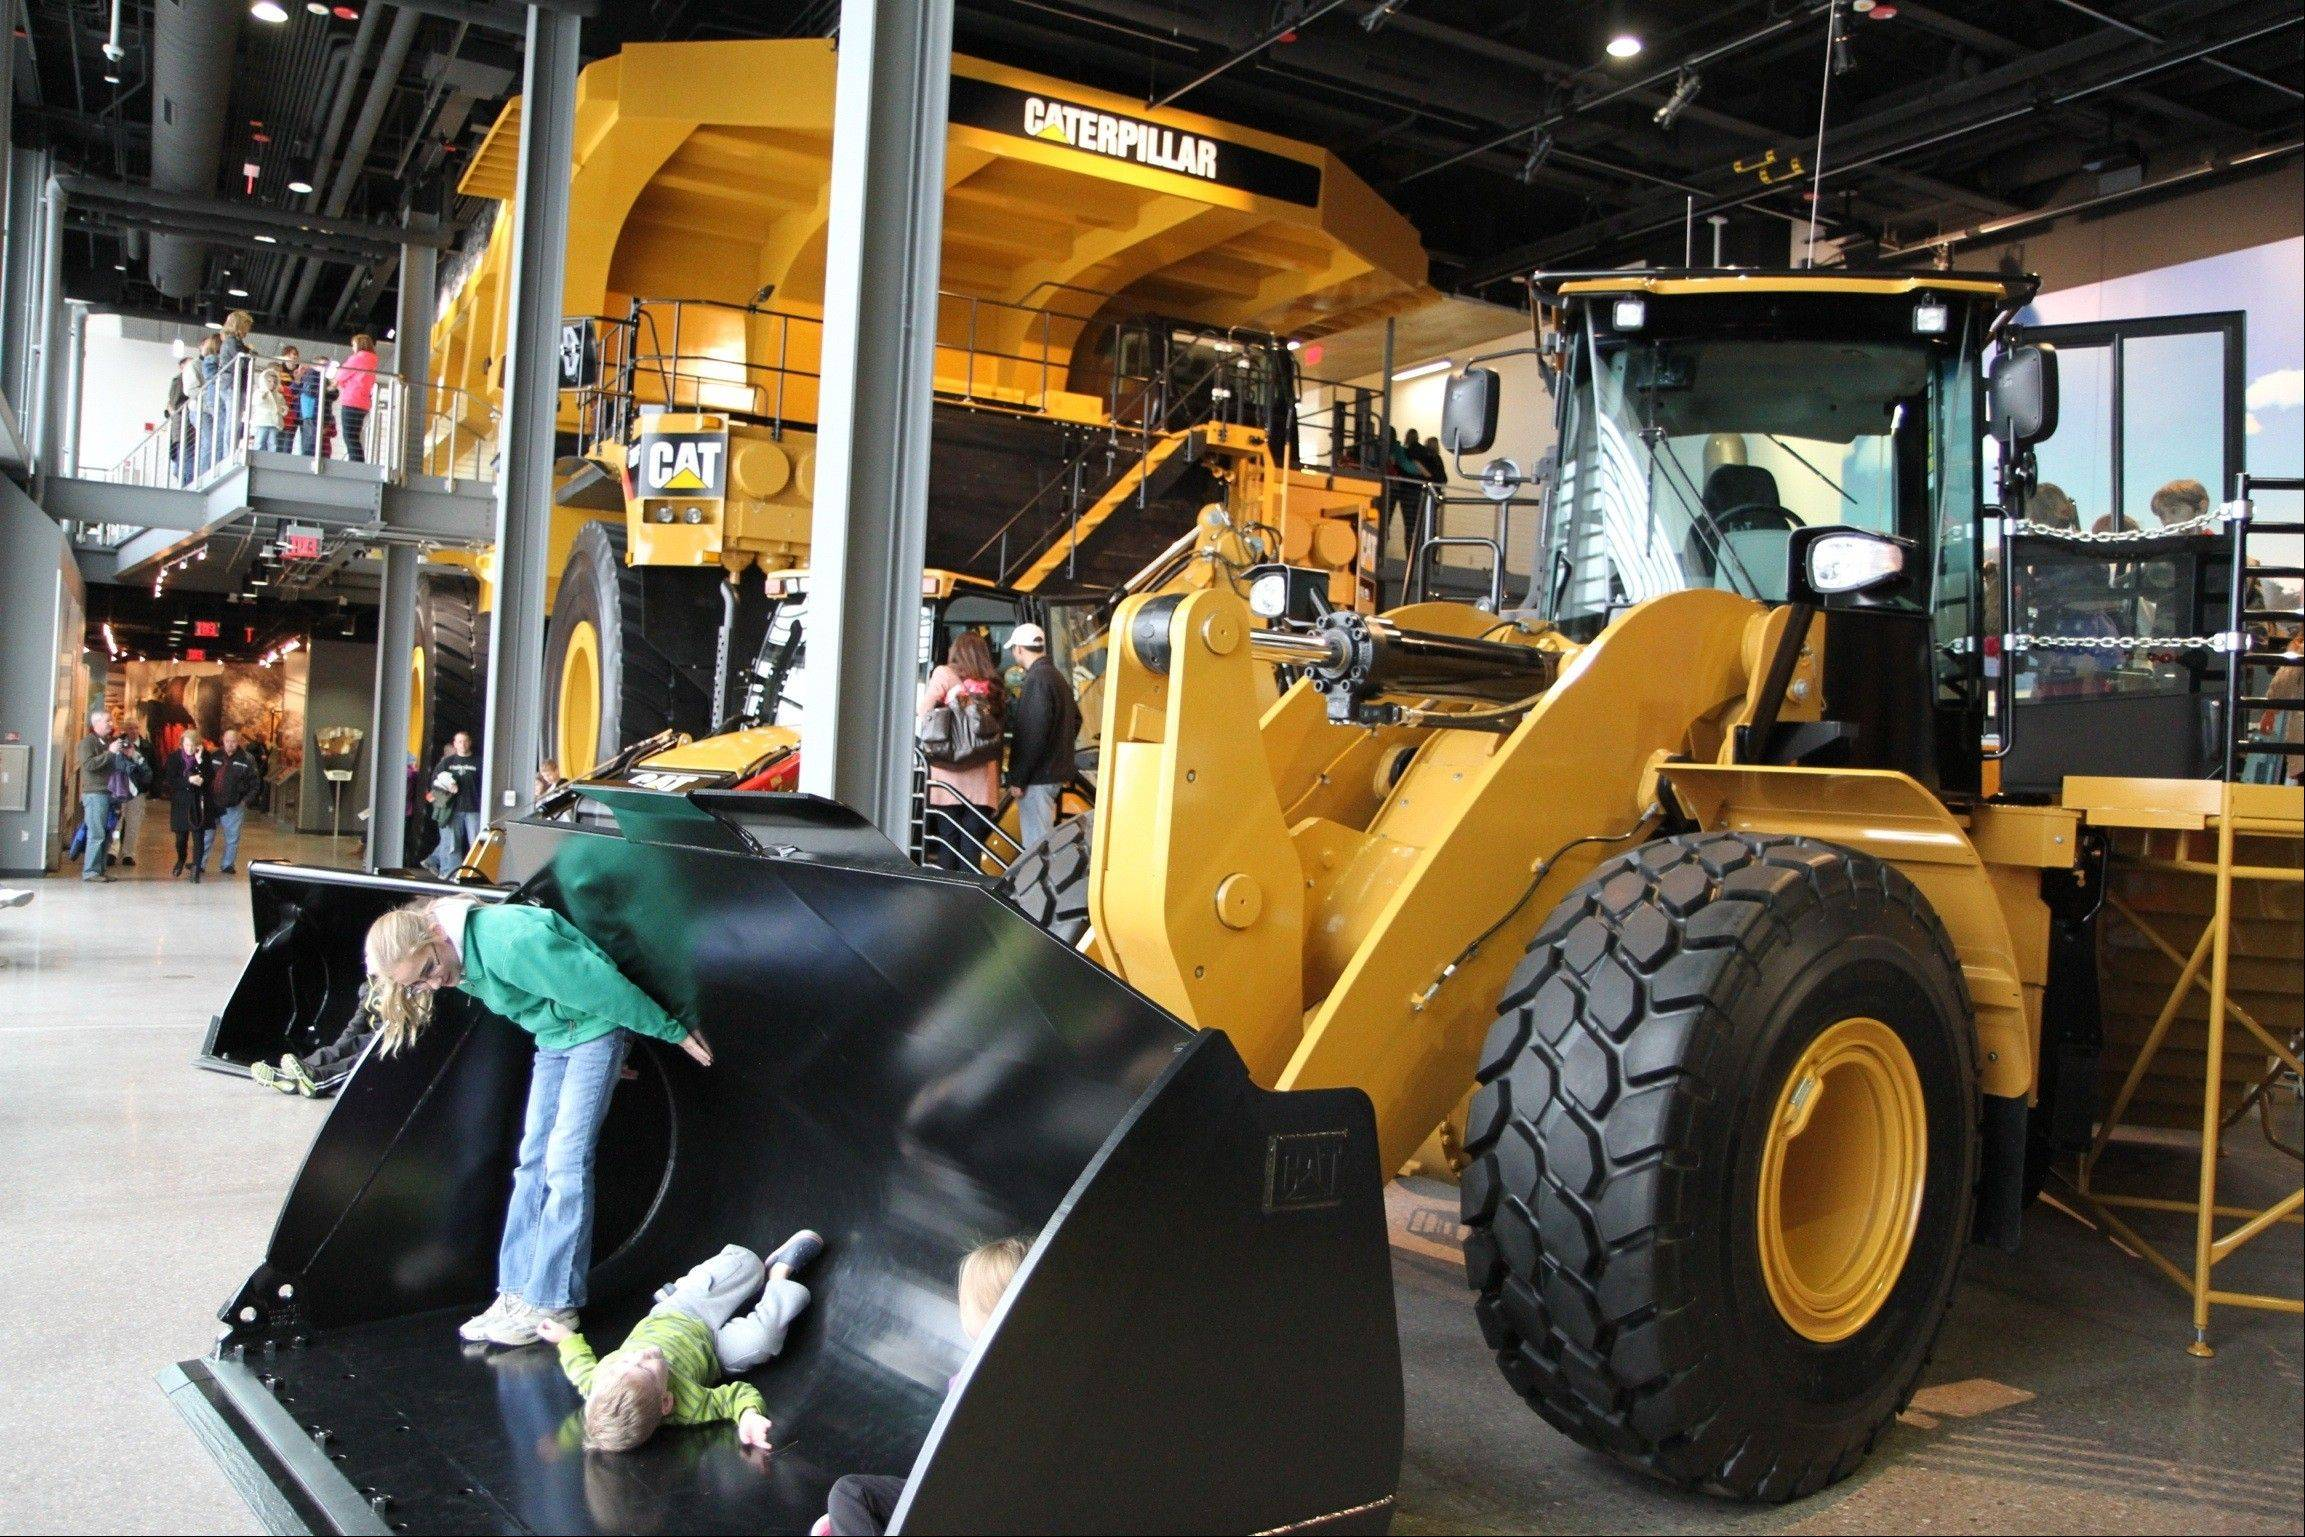 The Caterpillar Visitors Center in Peoria displays a variety of heavy equipment used on construction and mining sites.